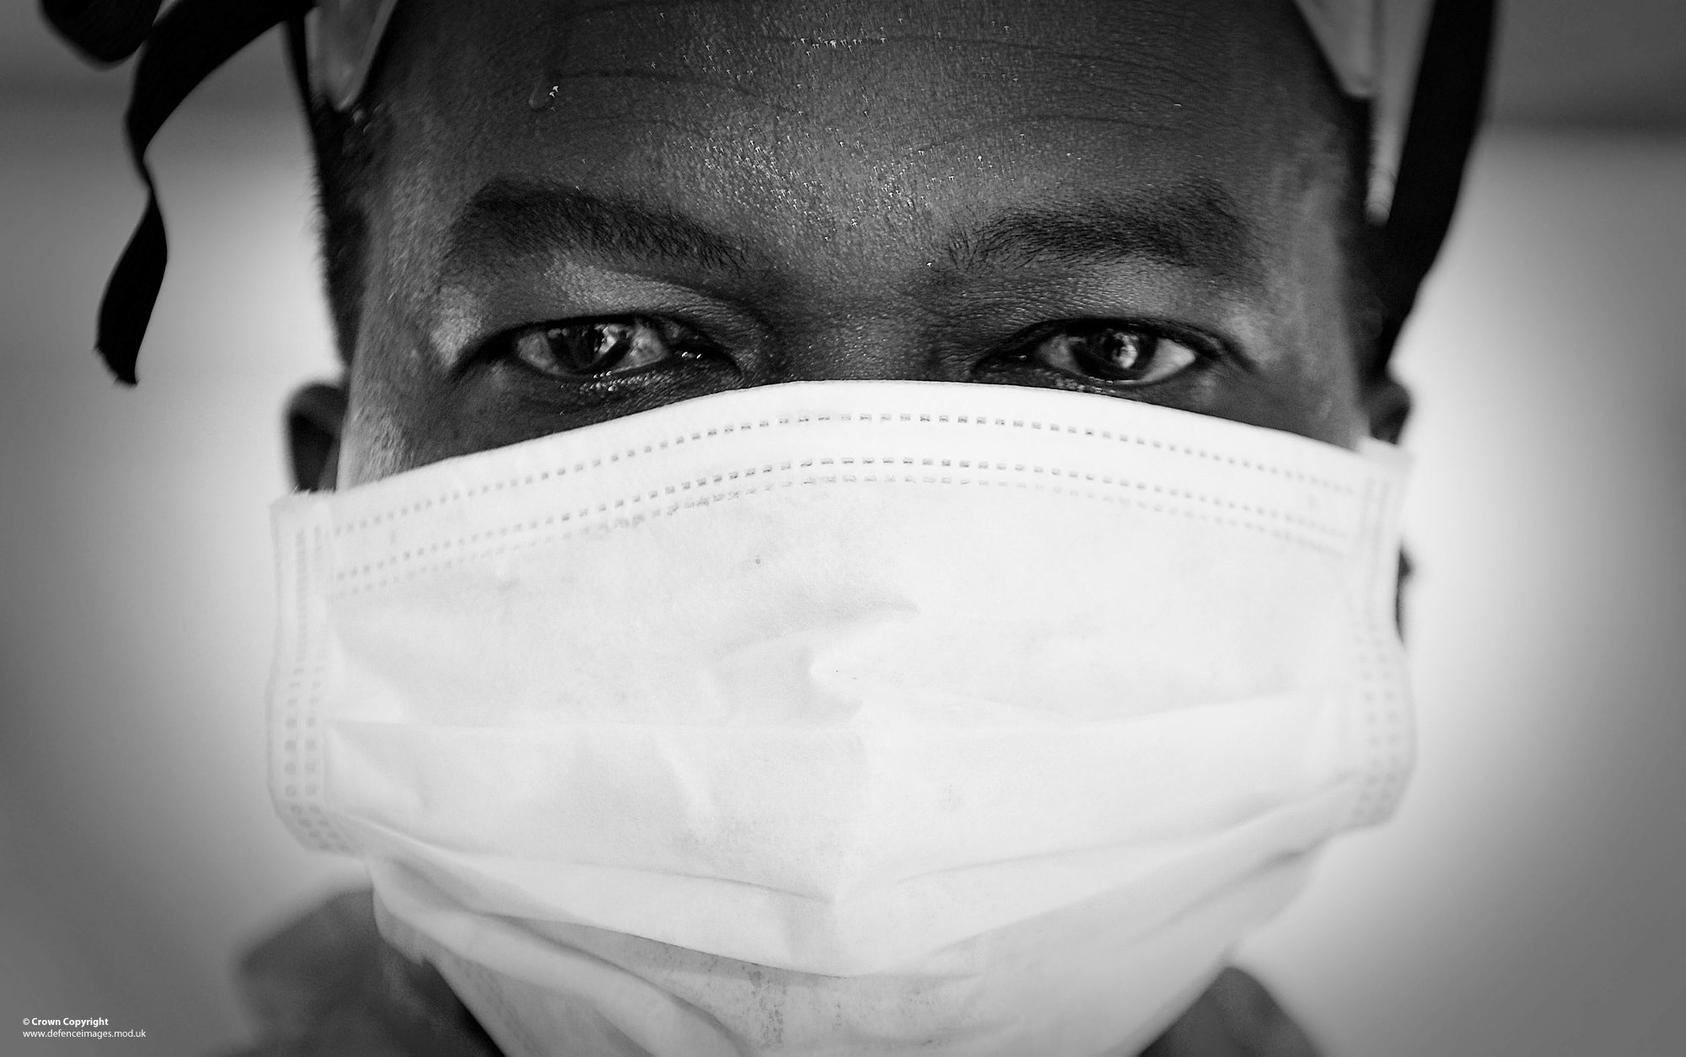 20150202-Doctor-in-the-Fight-Against-Ebola-UKMD-Flickr.jpg